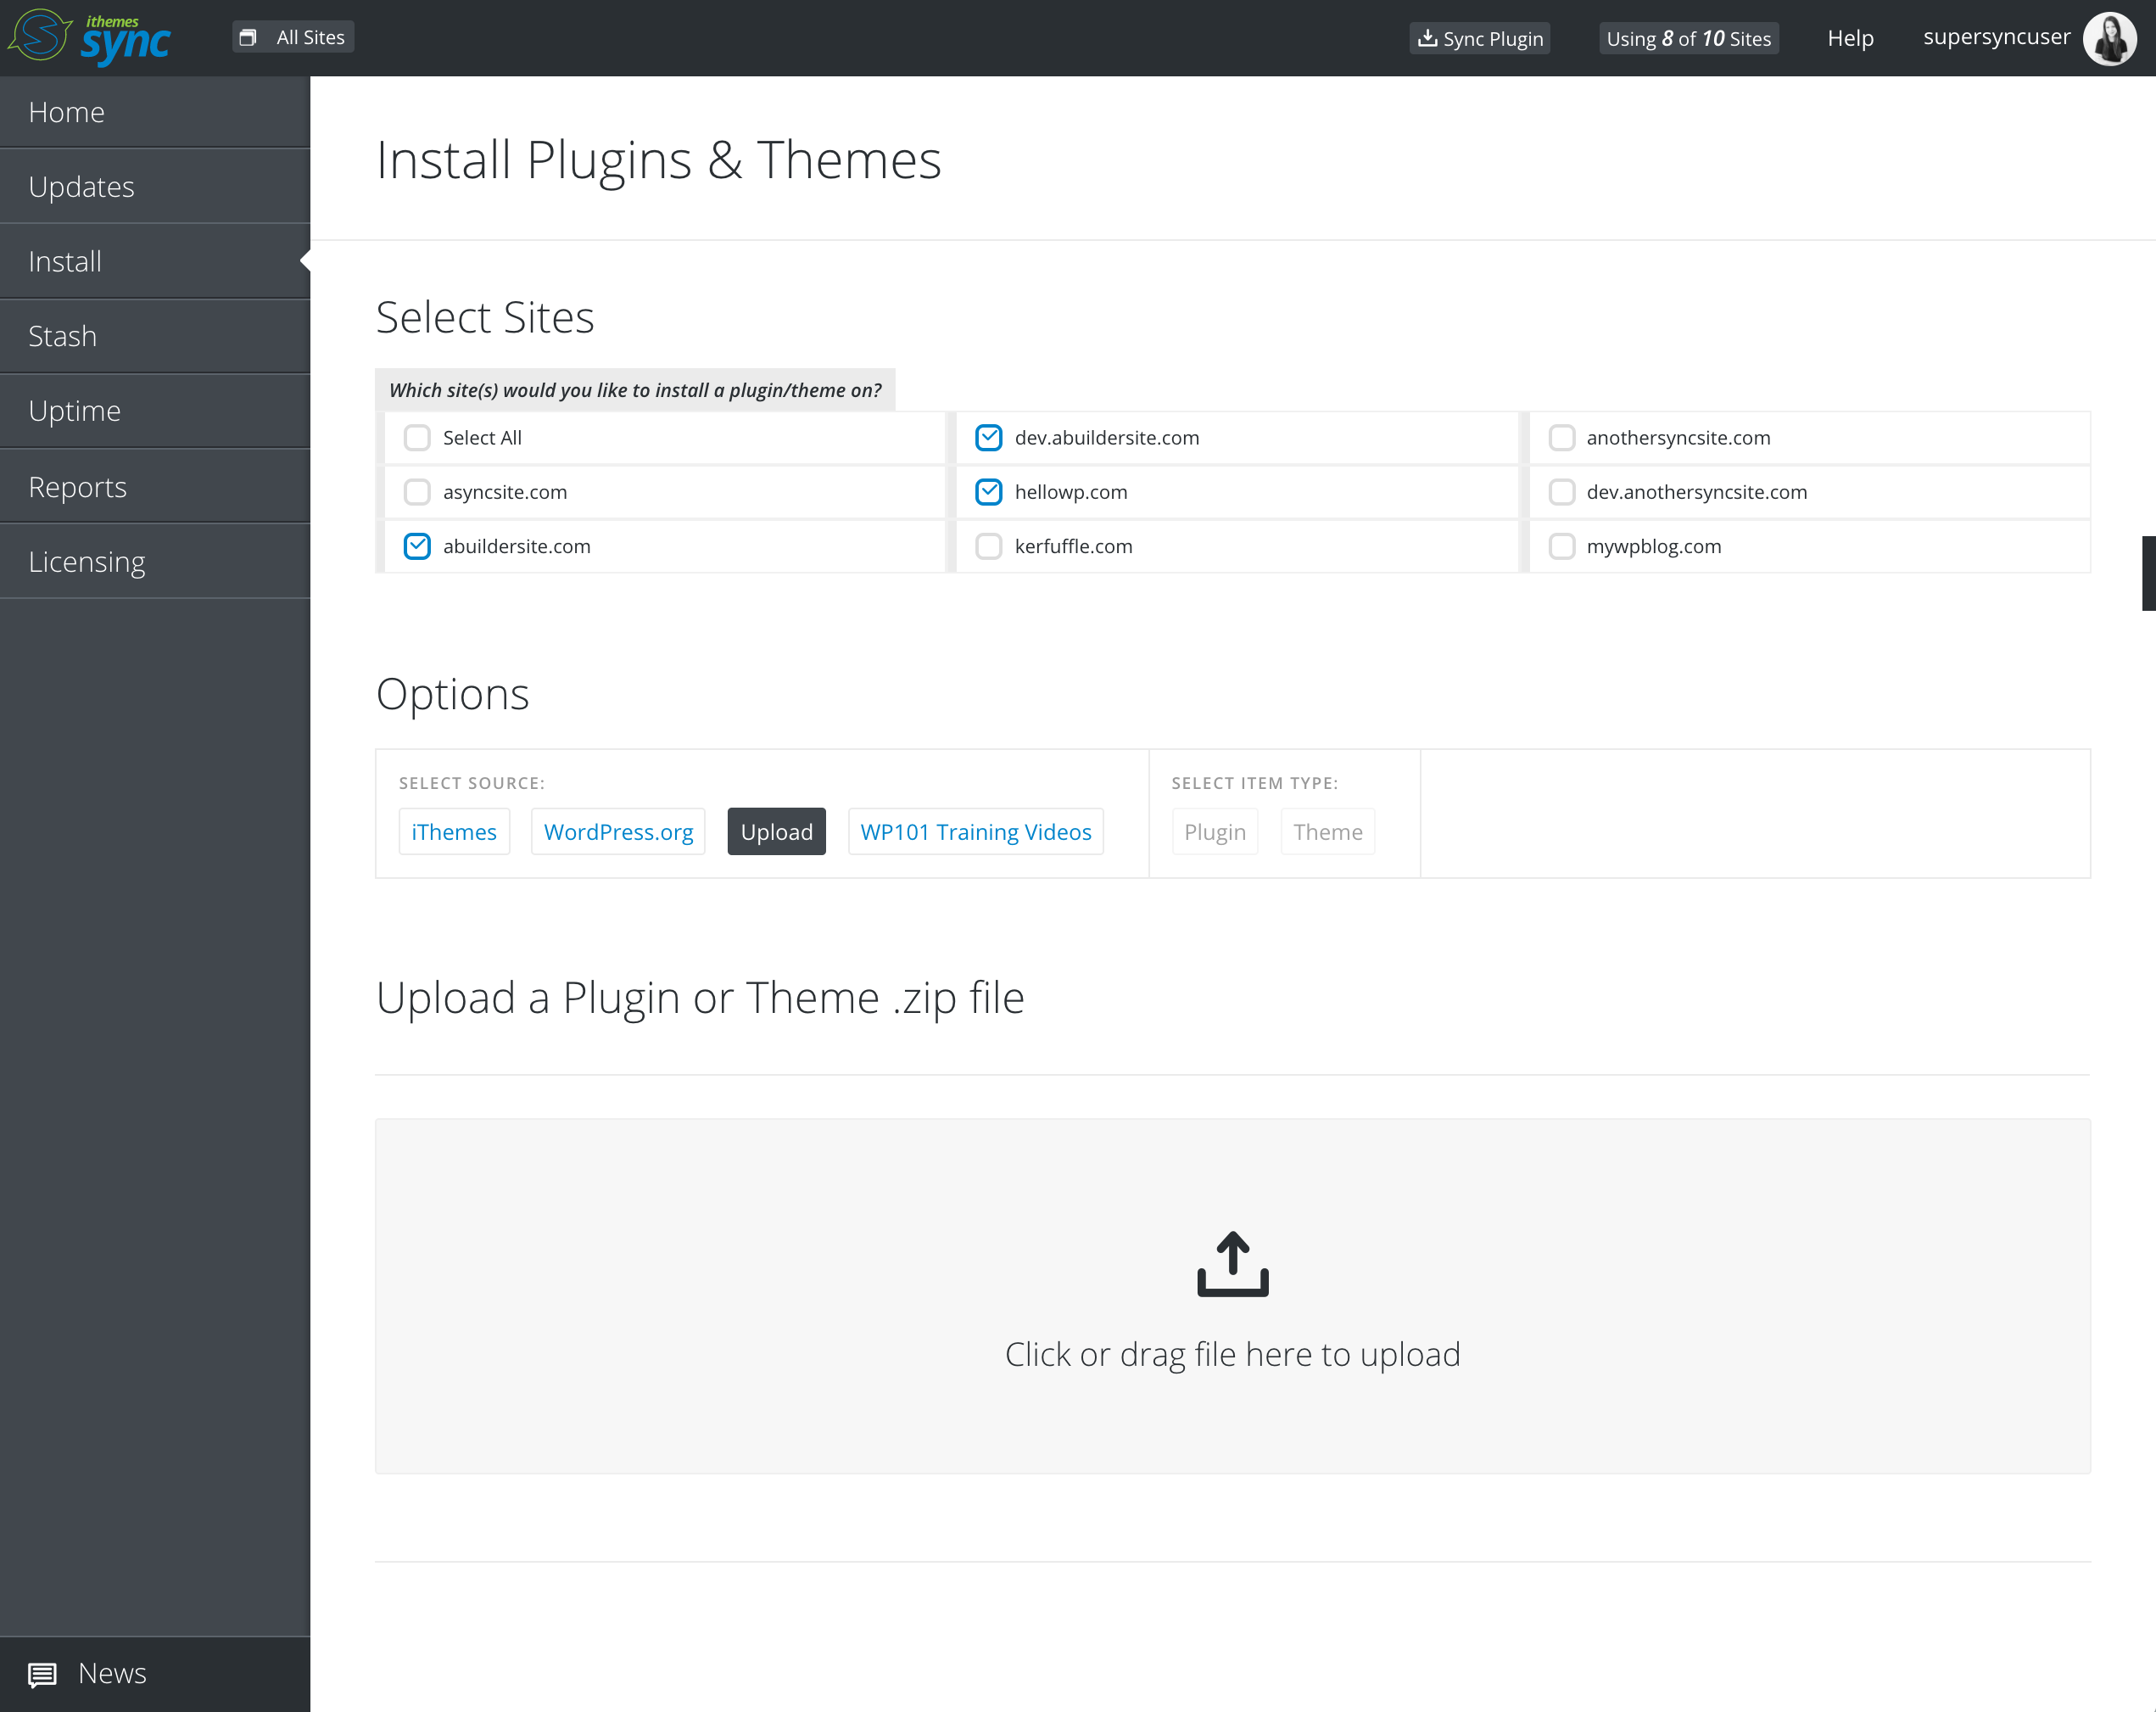 Bulk install themes and plugins across multiple sites via zip upload and WordPress.org search